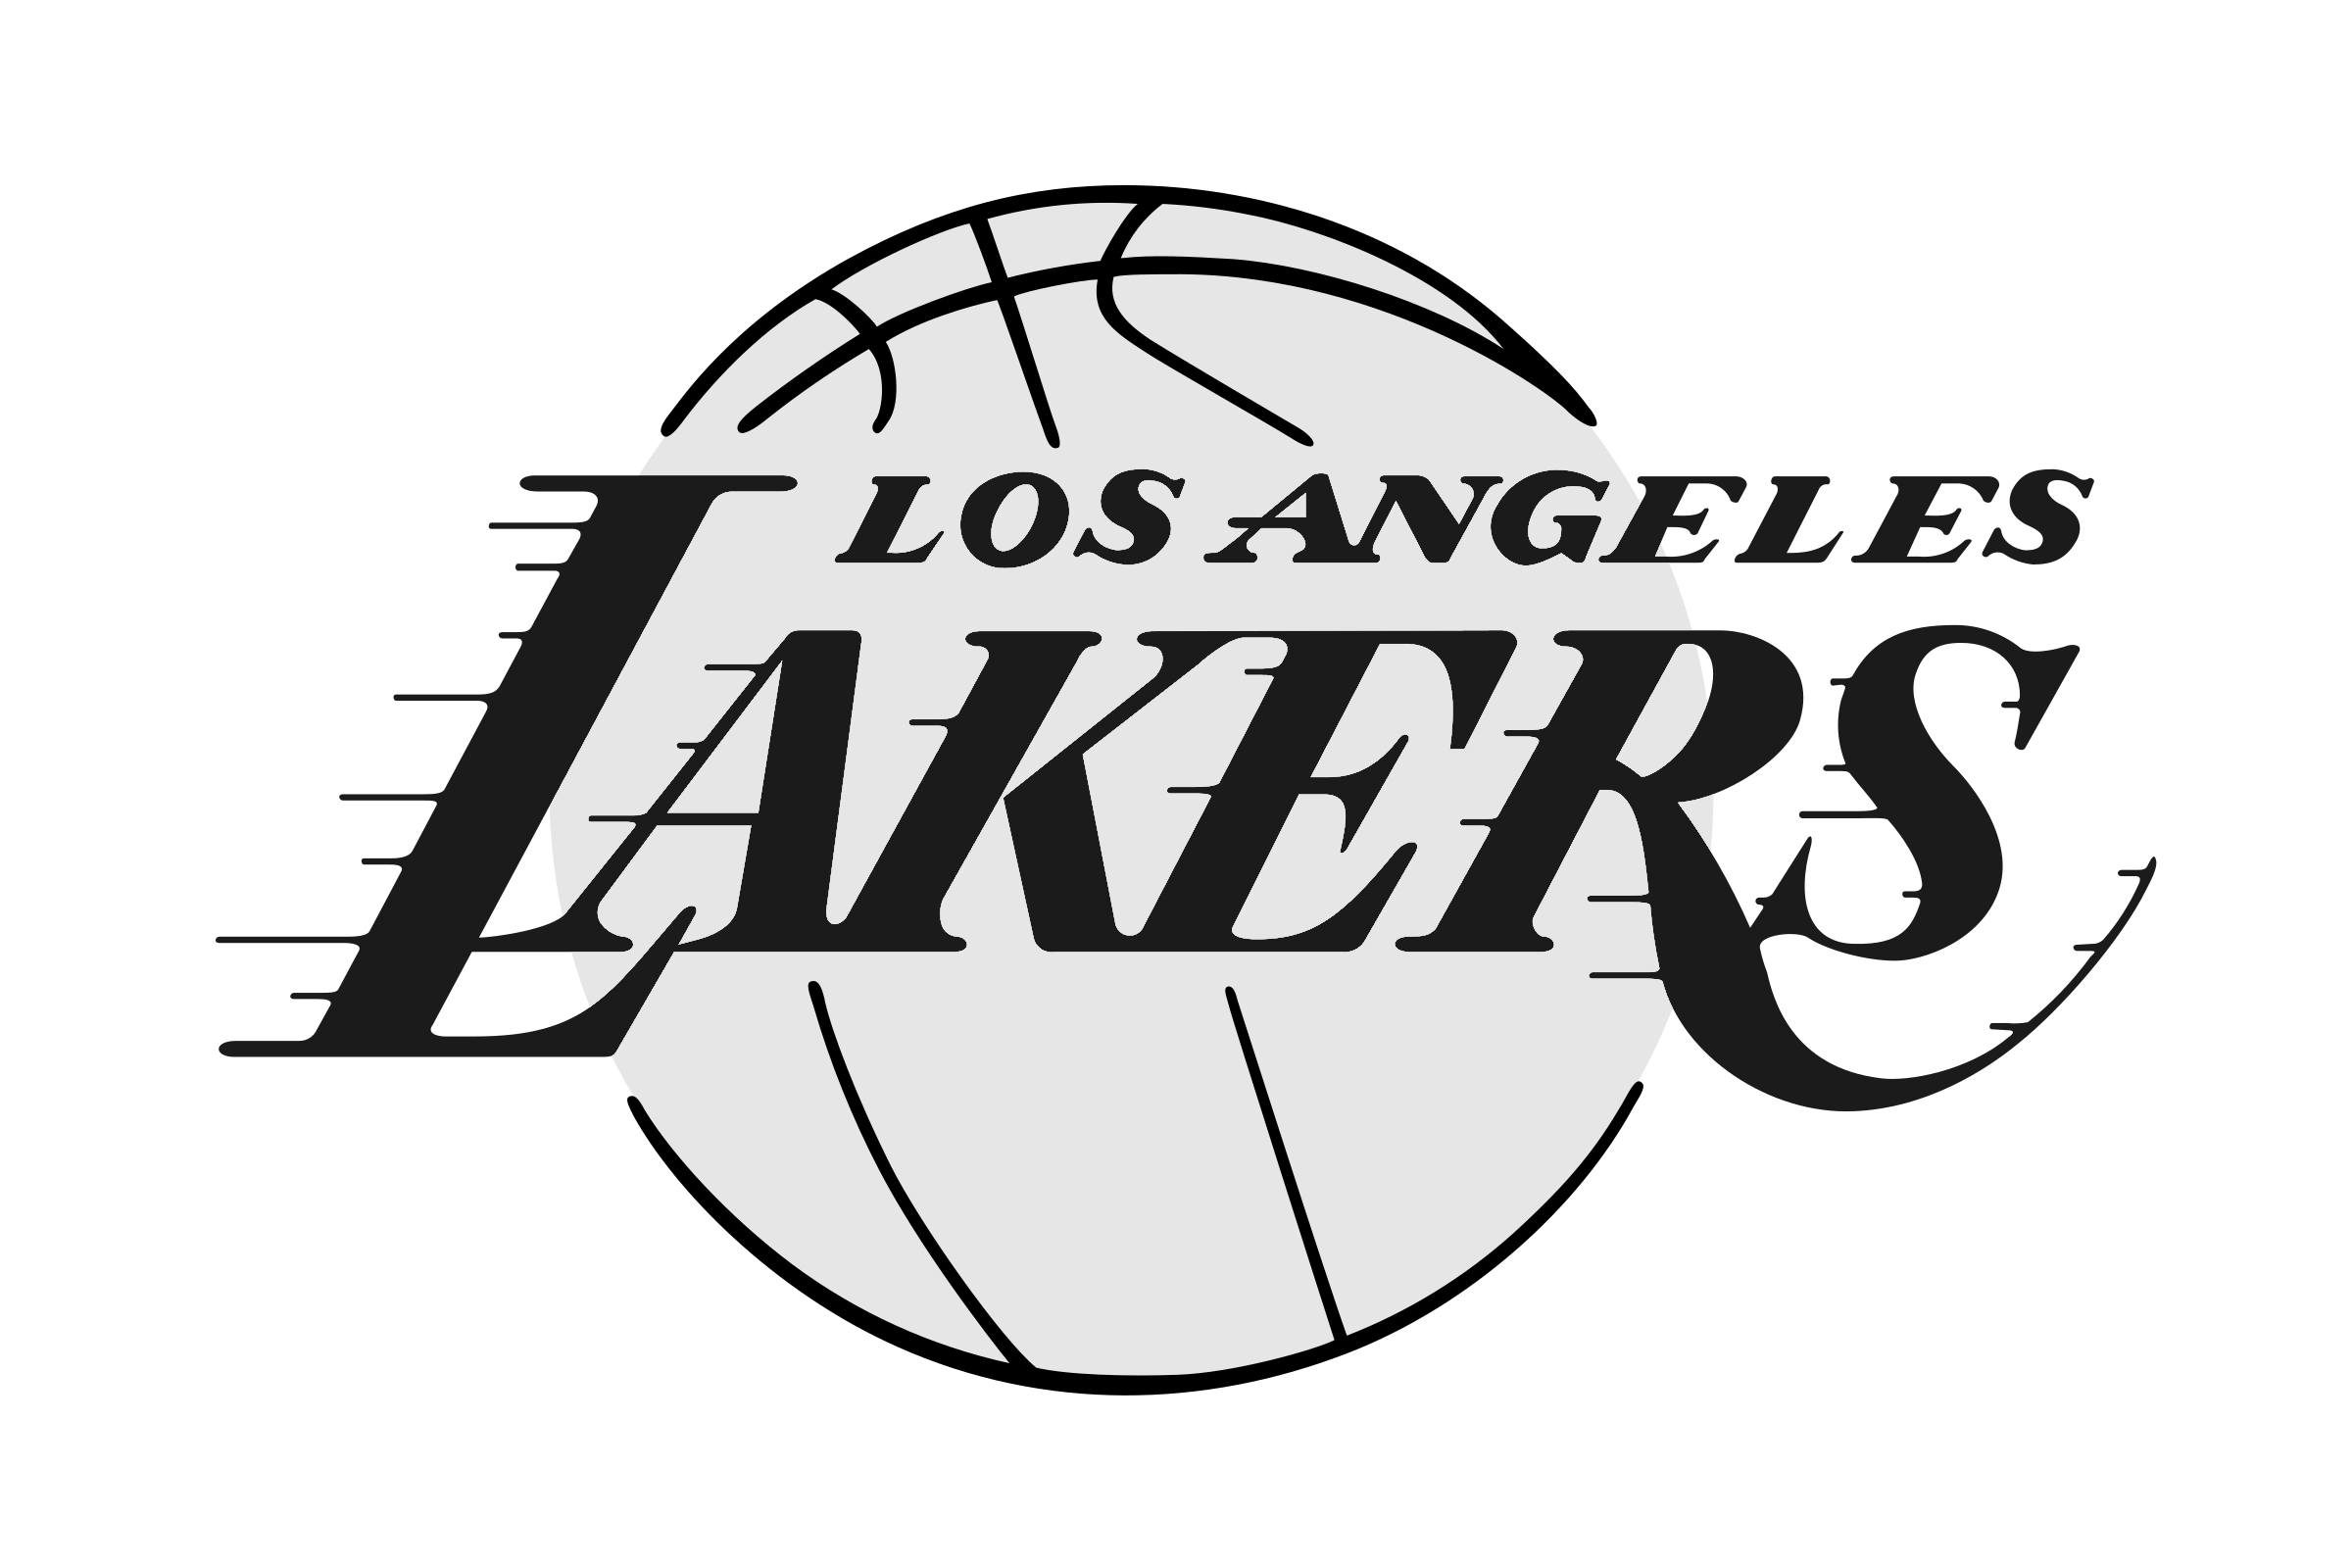 Los Angeles Lakers Logo PNG Transparent & SVG Vector.